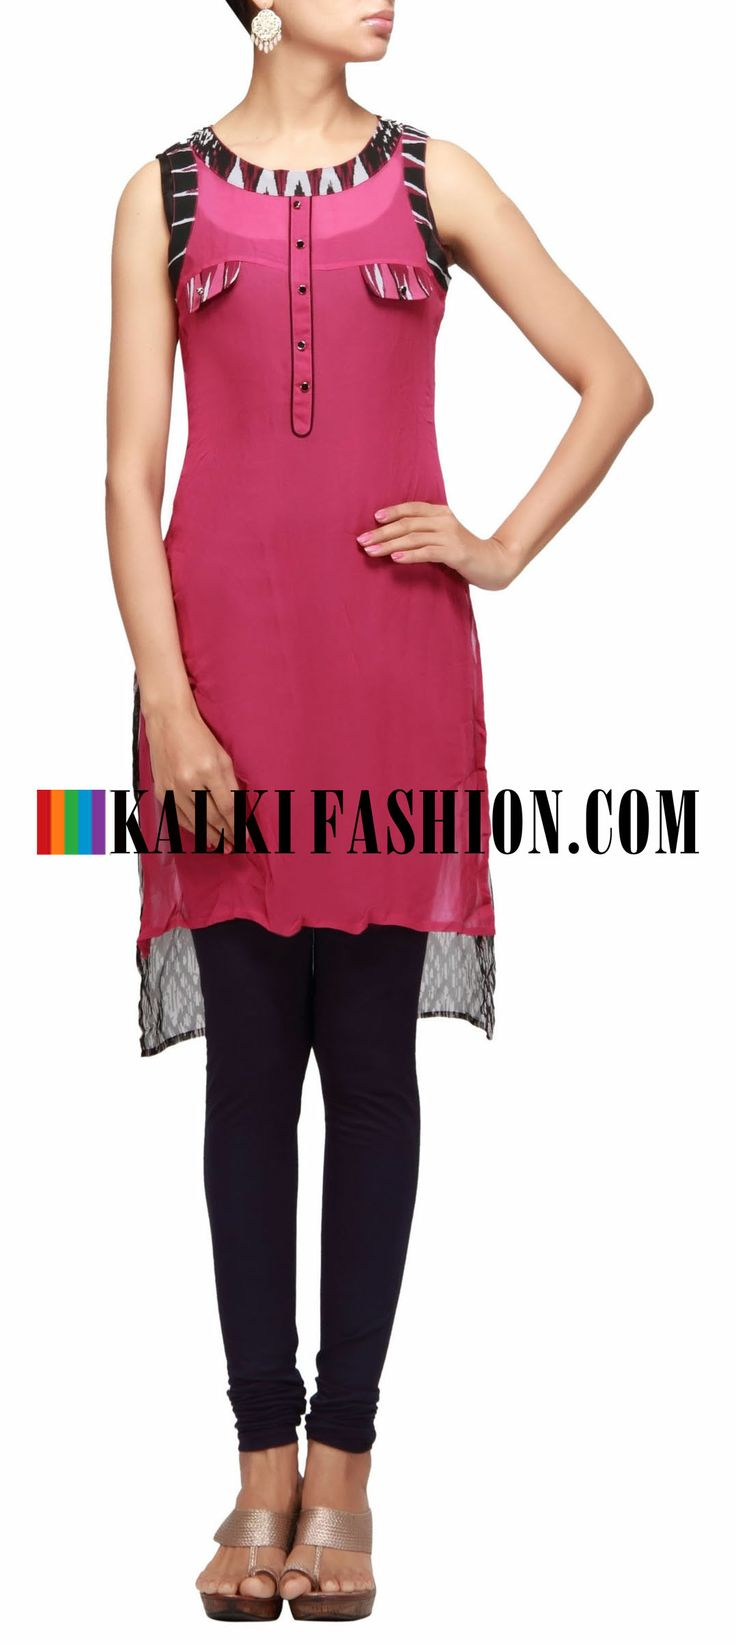 Buy Online from the link below. We ship worldwide (Free Shipping over US$100) http://www.kalkifashion.com/pink-kurti-highlighted-in-print-and-center-placket.html Pink kurti highlighted in print and center placket